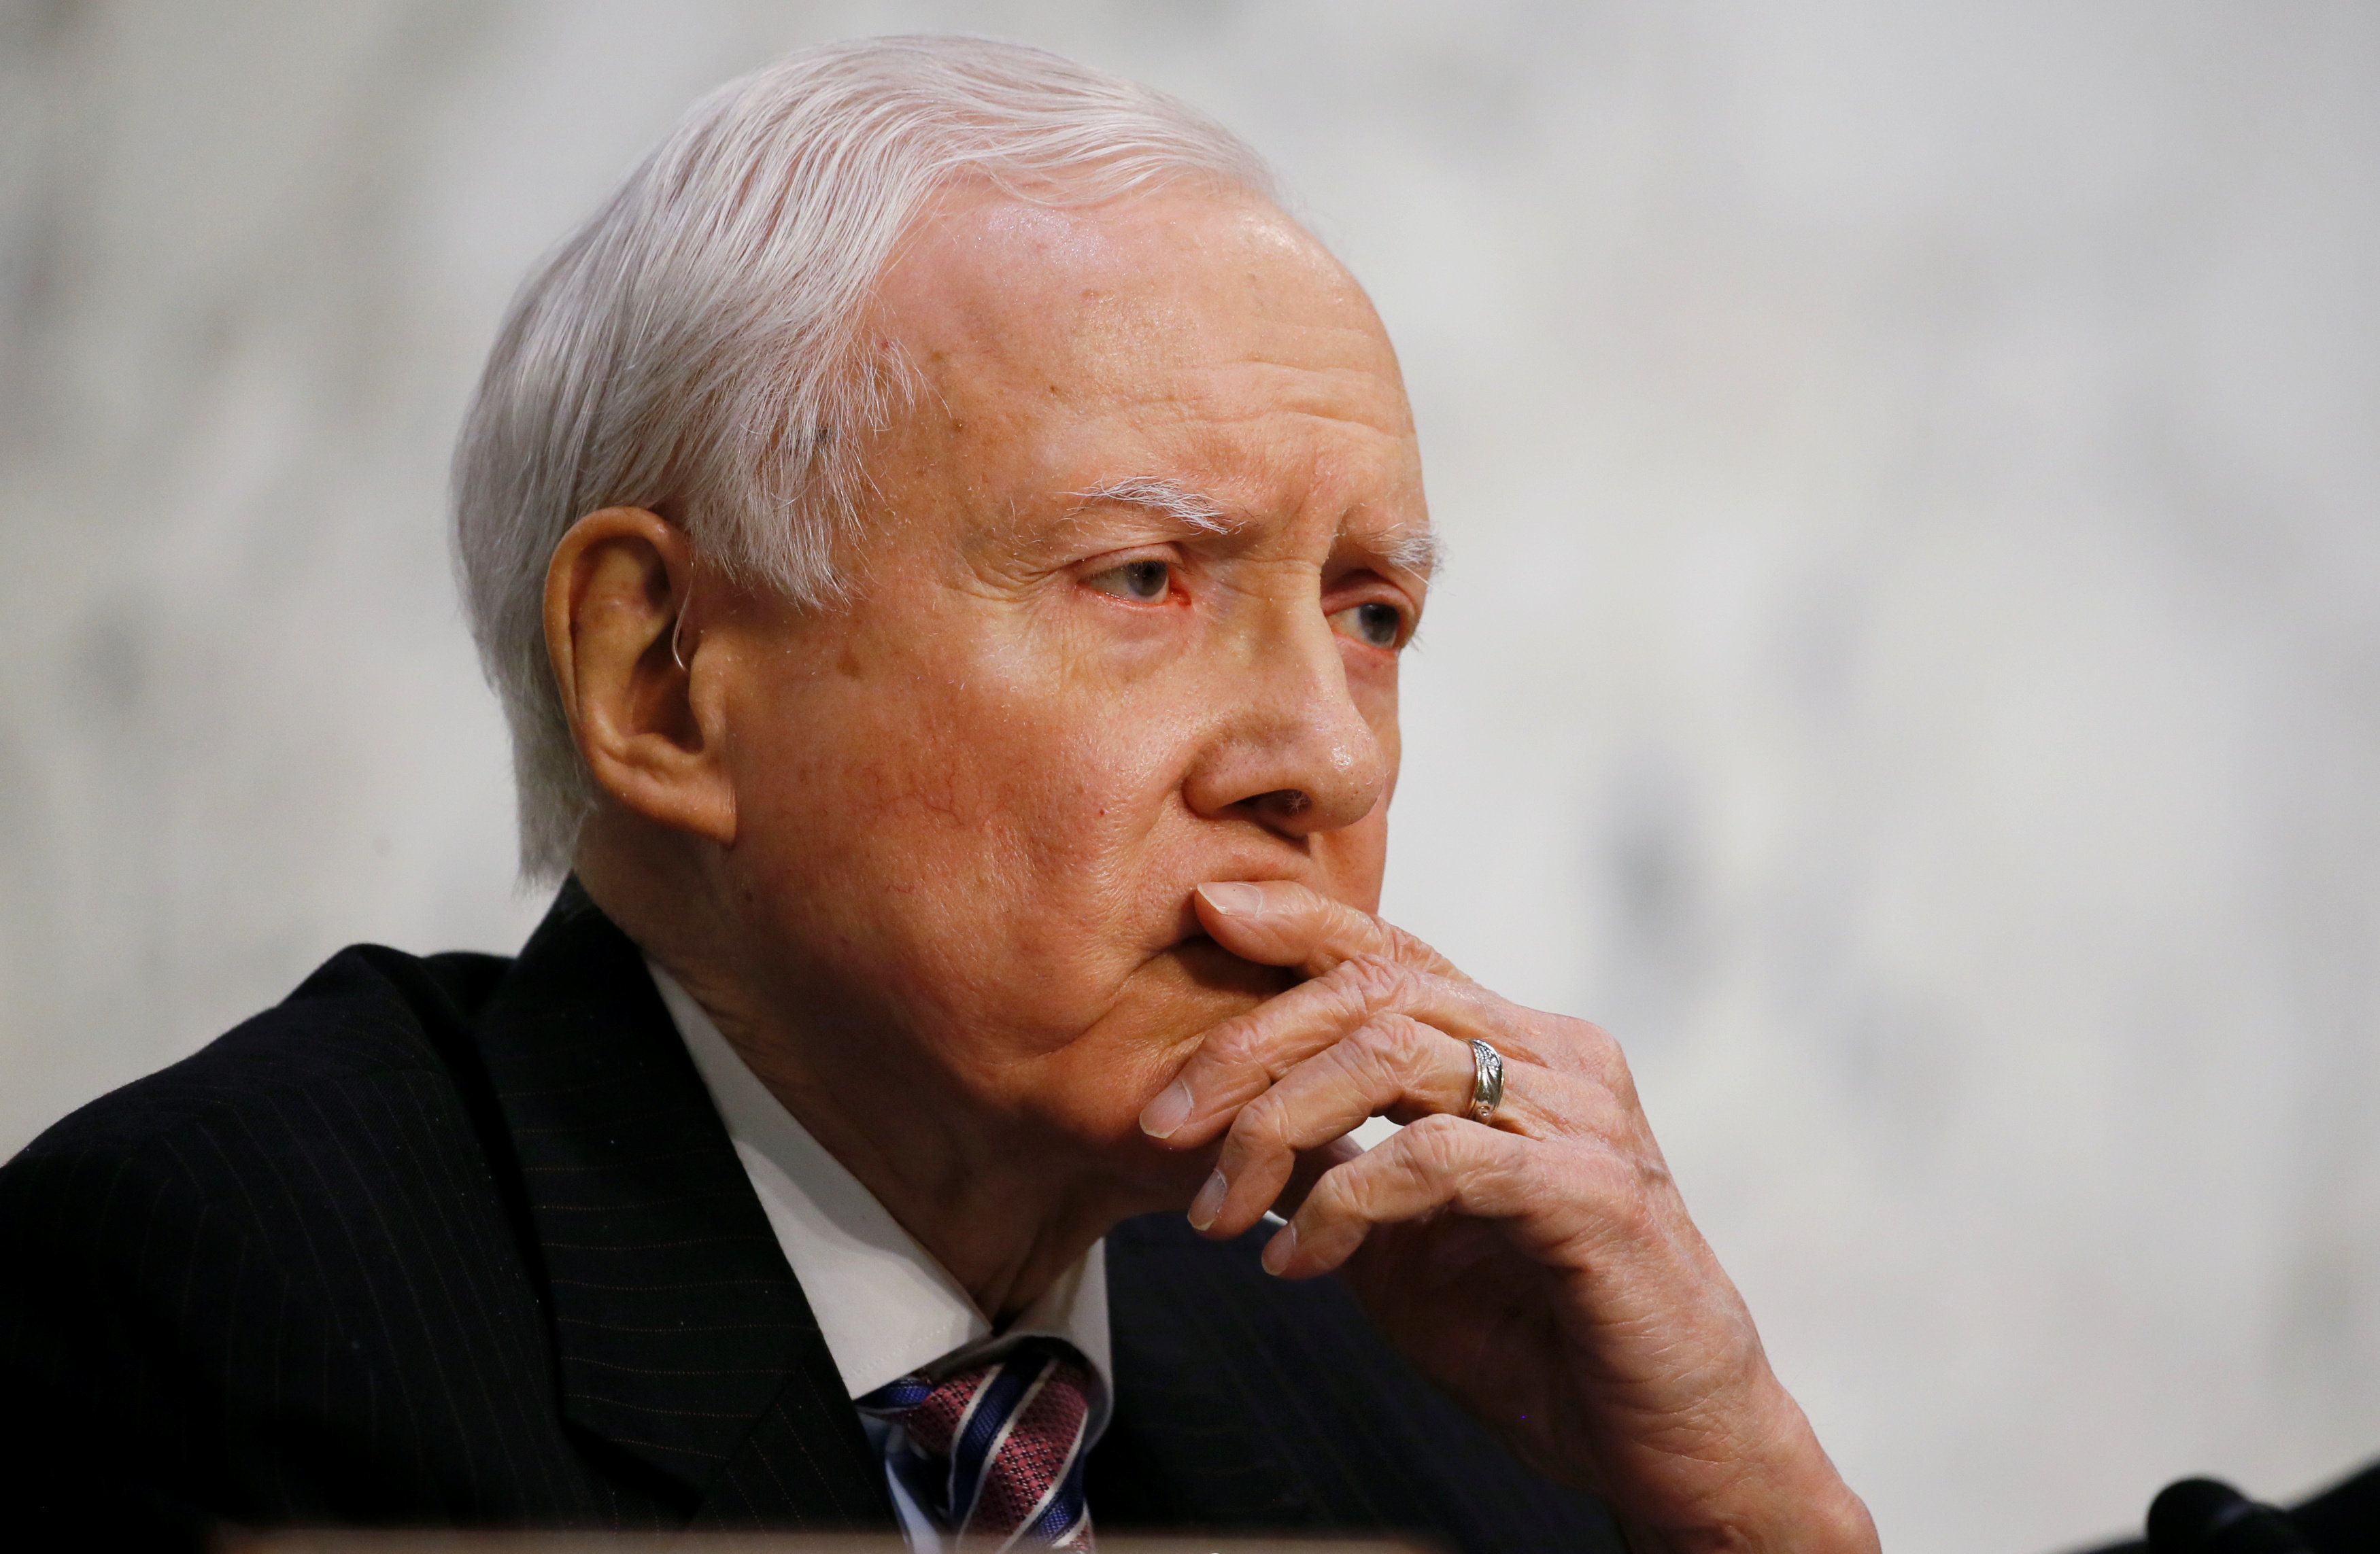 GOP Senator Loses His Cool When Confronted About Tax Cuts For The Rich